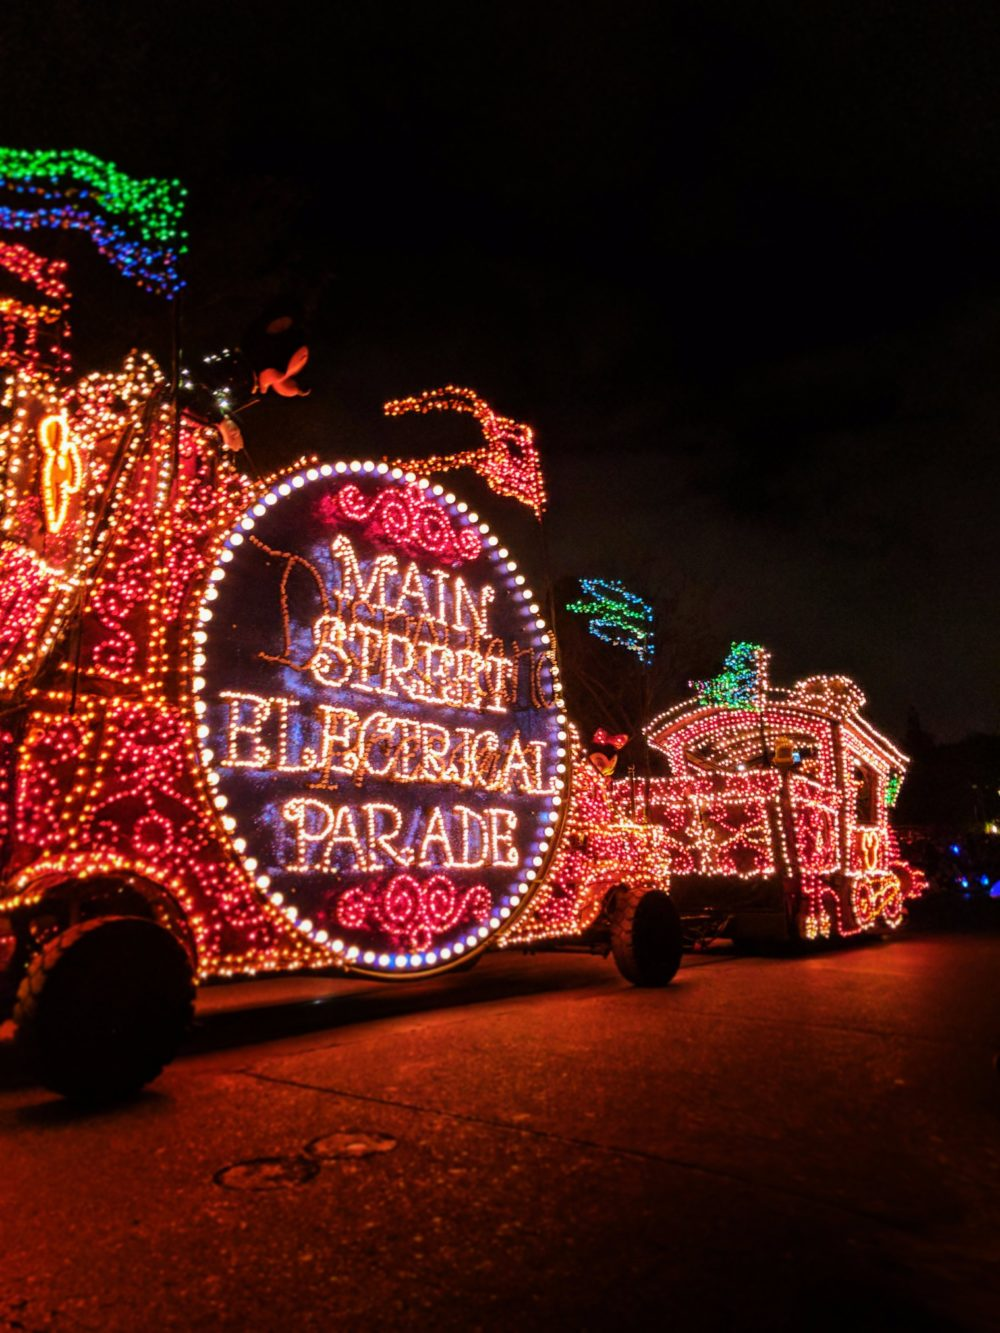 Mickey Mouse float Main Street Electrical Parade Disneyland at night 2